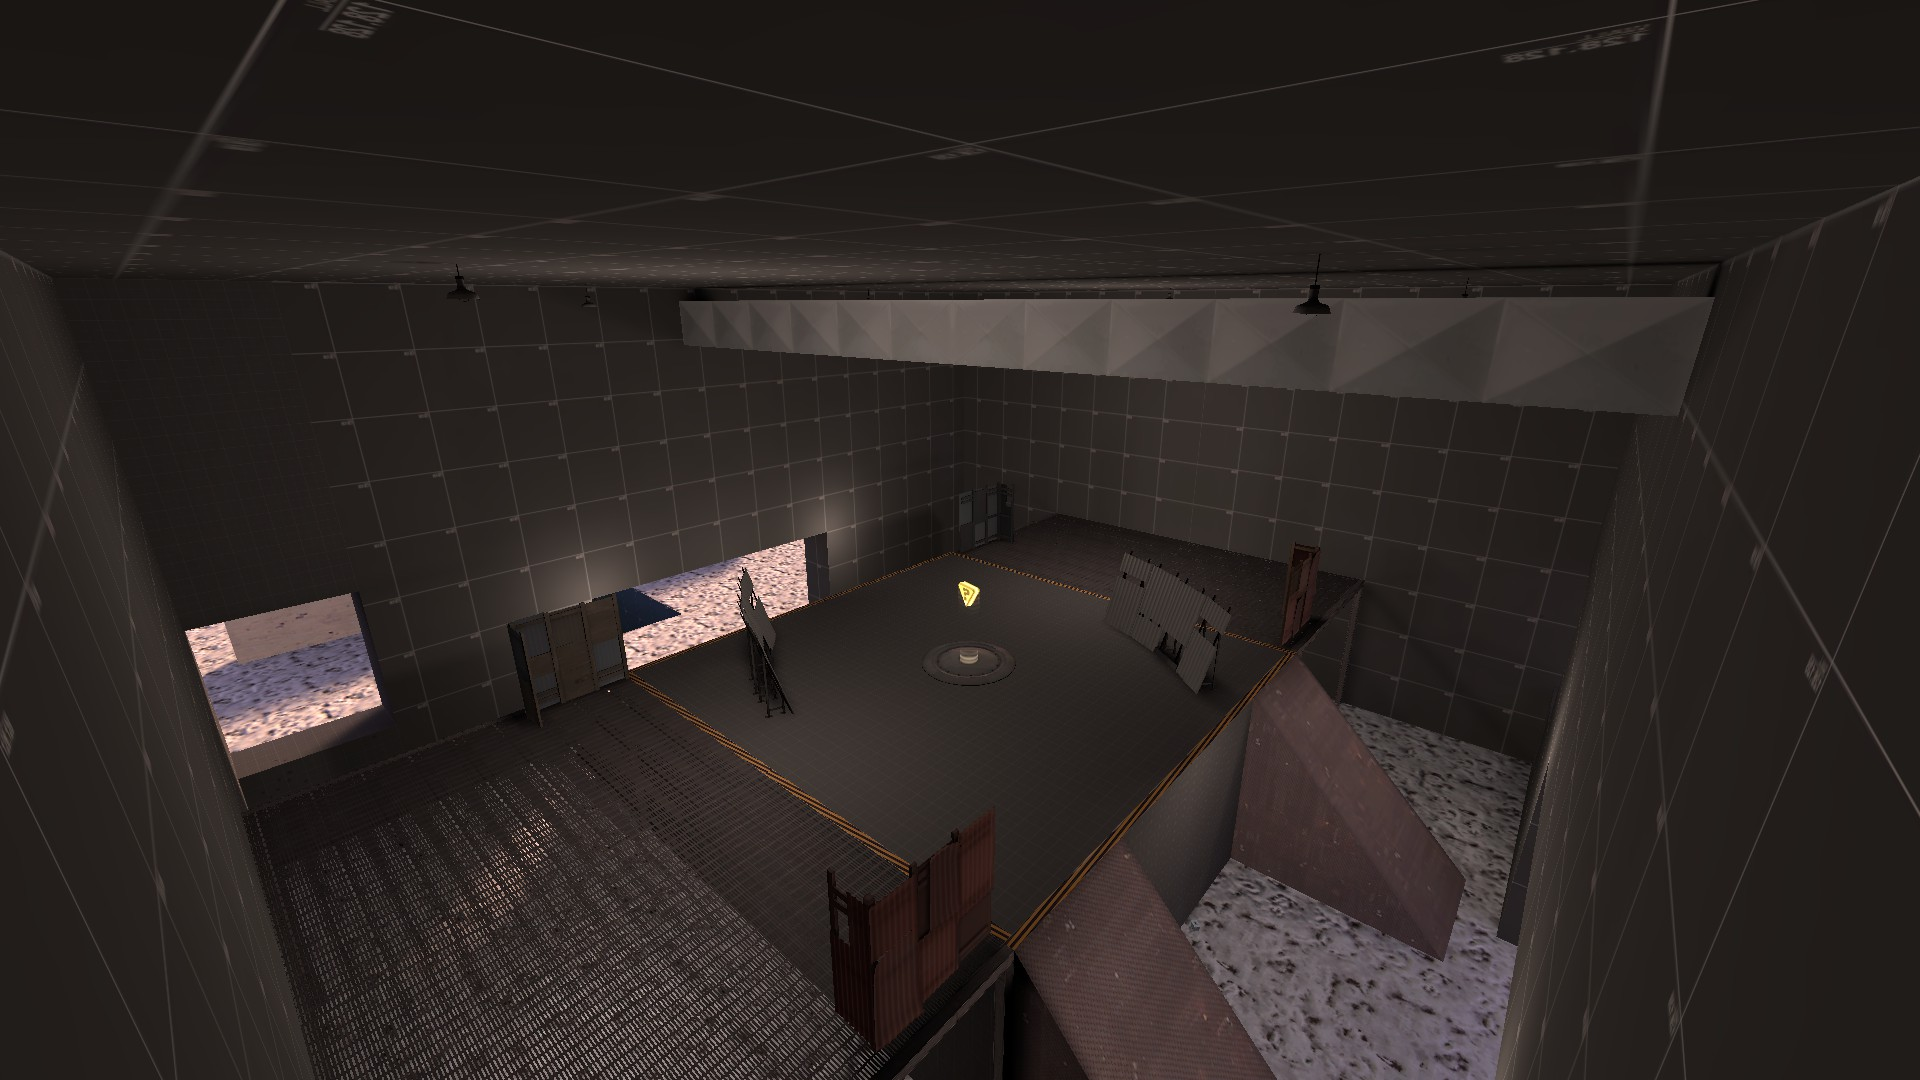 arena_ayy_a10008.jpg